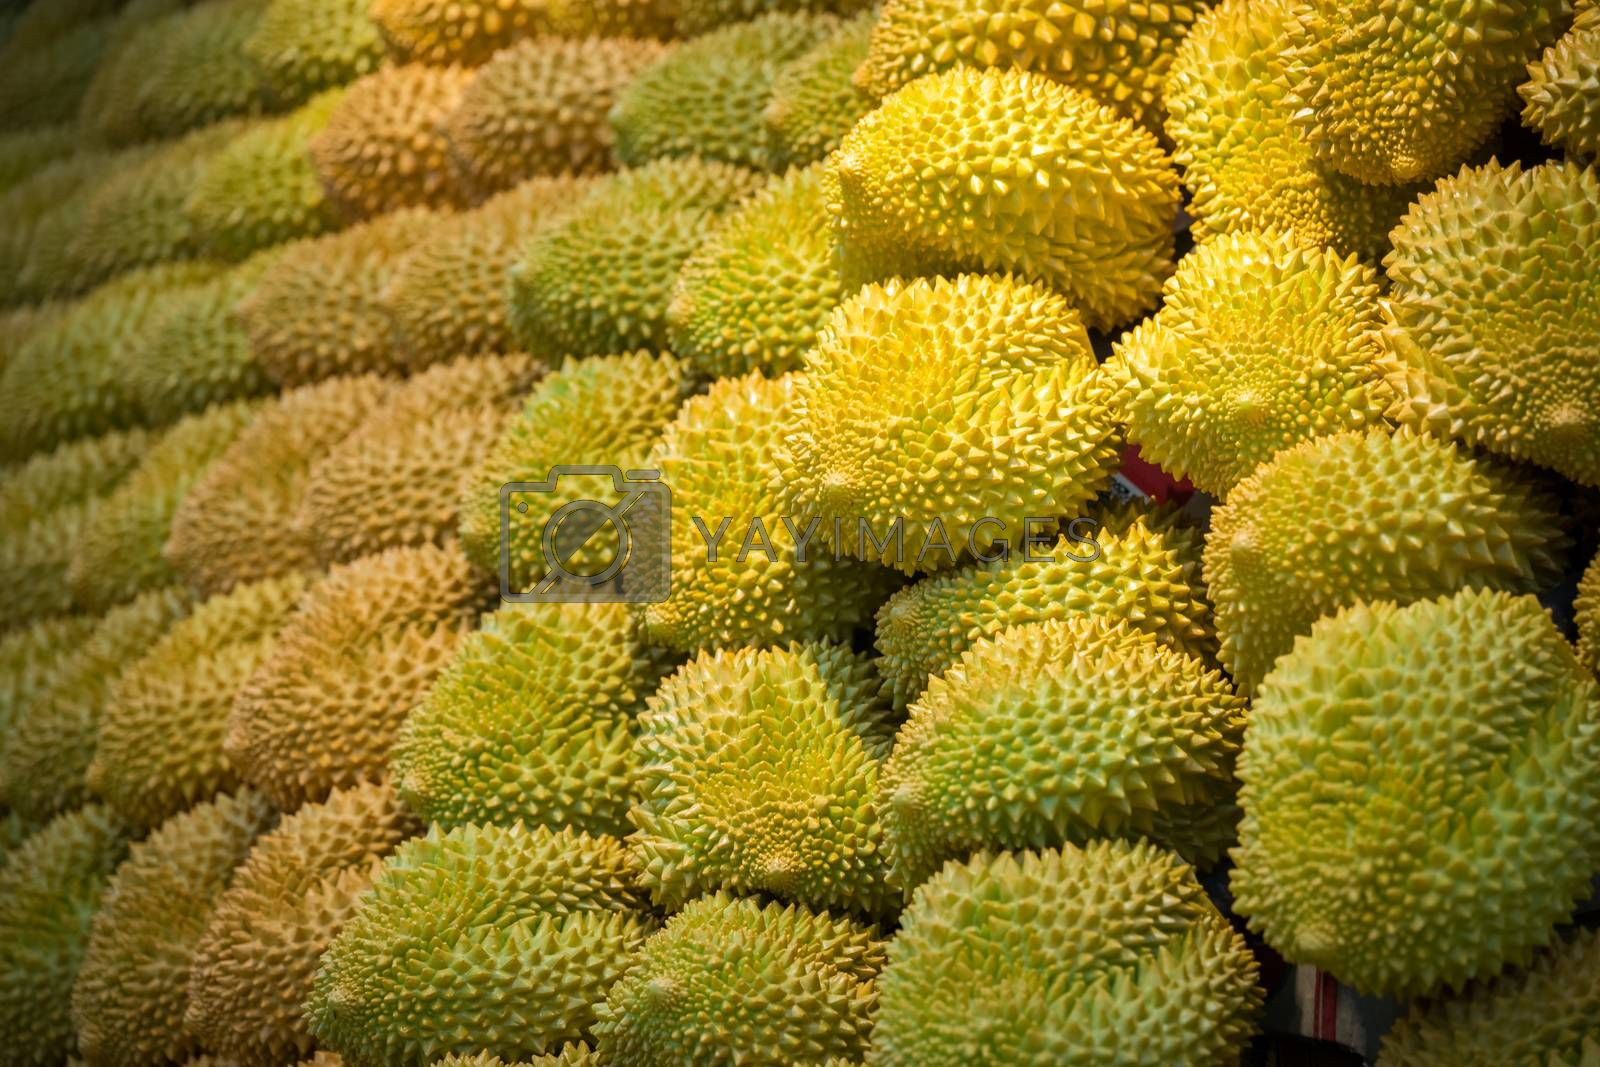 Closeup shot of a lot of fresh durian fruits in the market by pawopa3336